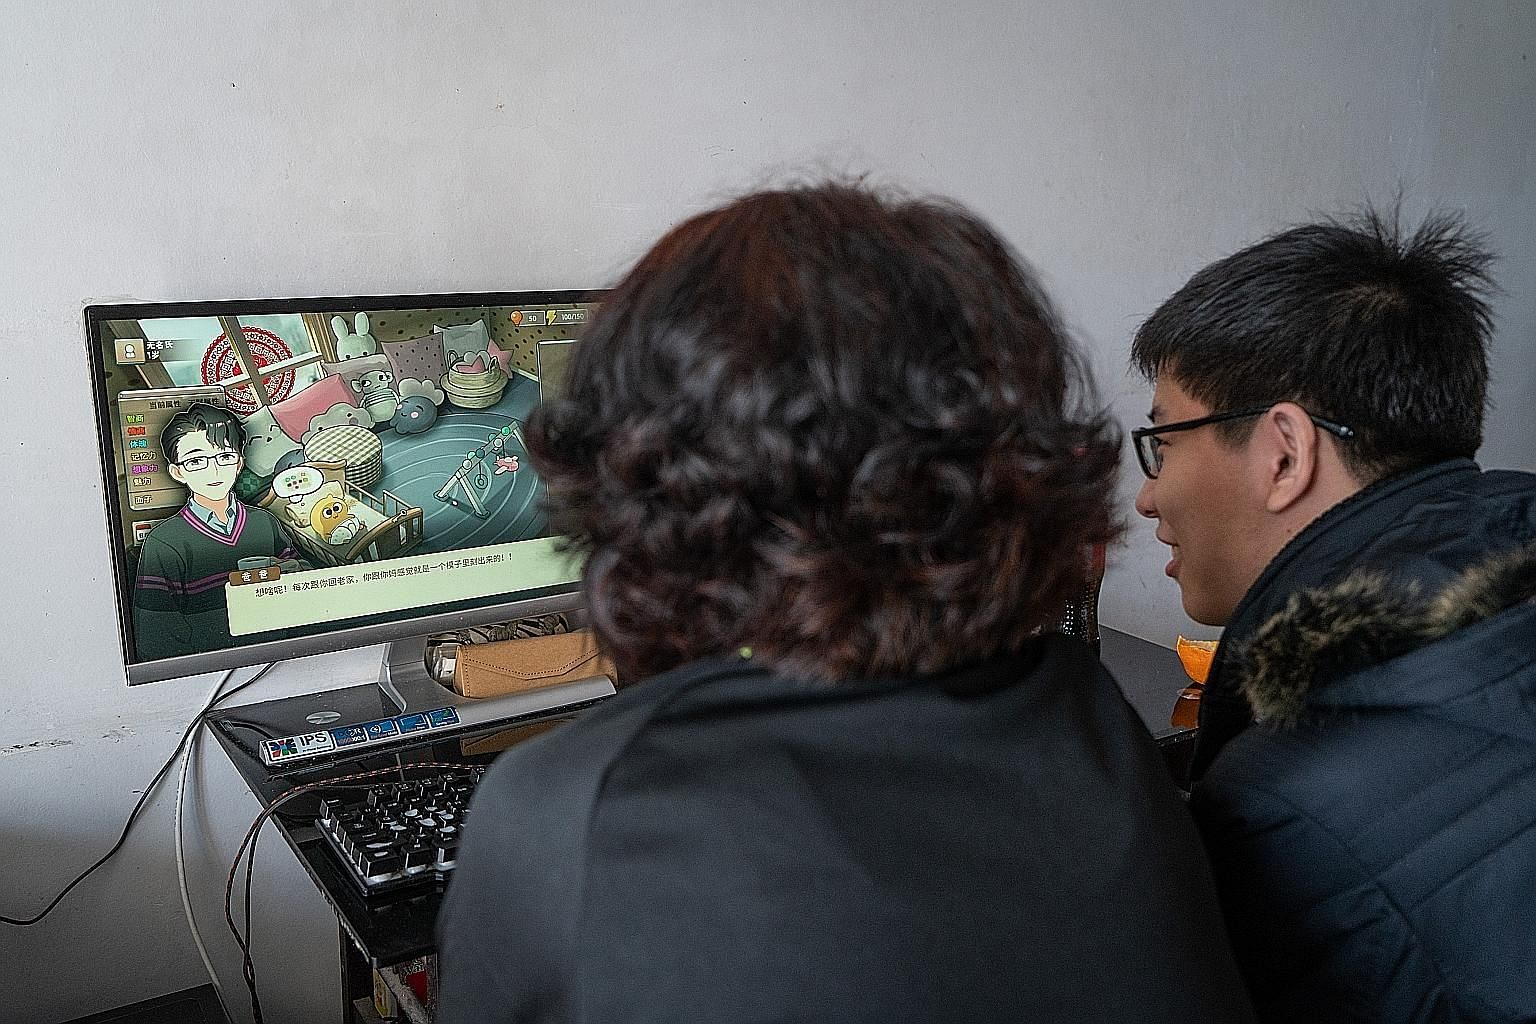 Mr Kang Shenghao, 19, playing the video game Chinese Parents with his mother.